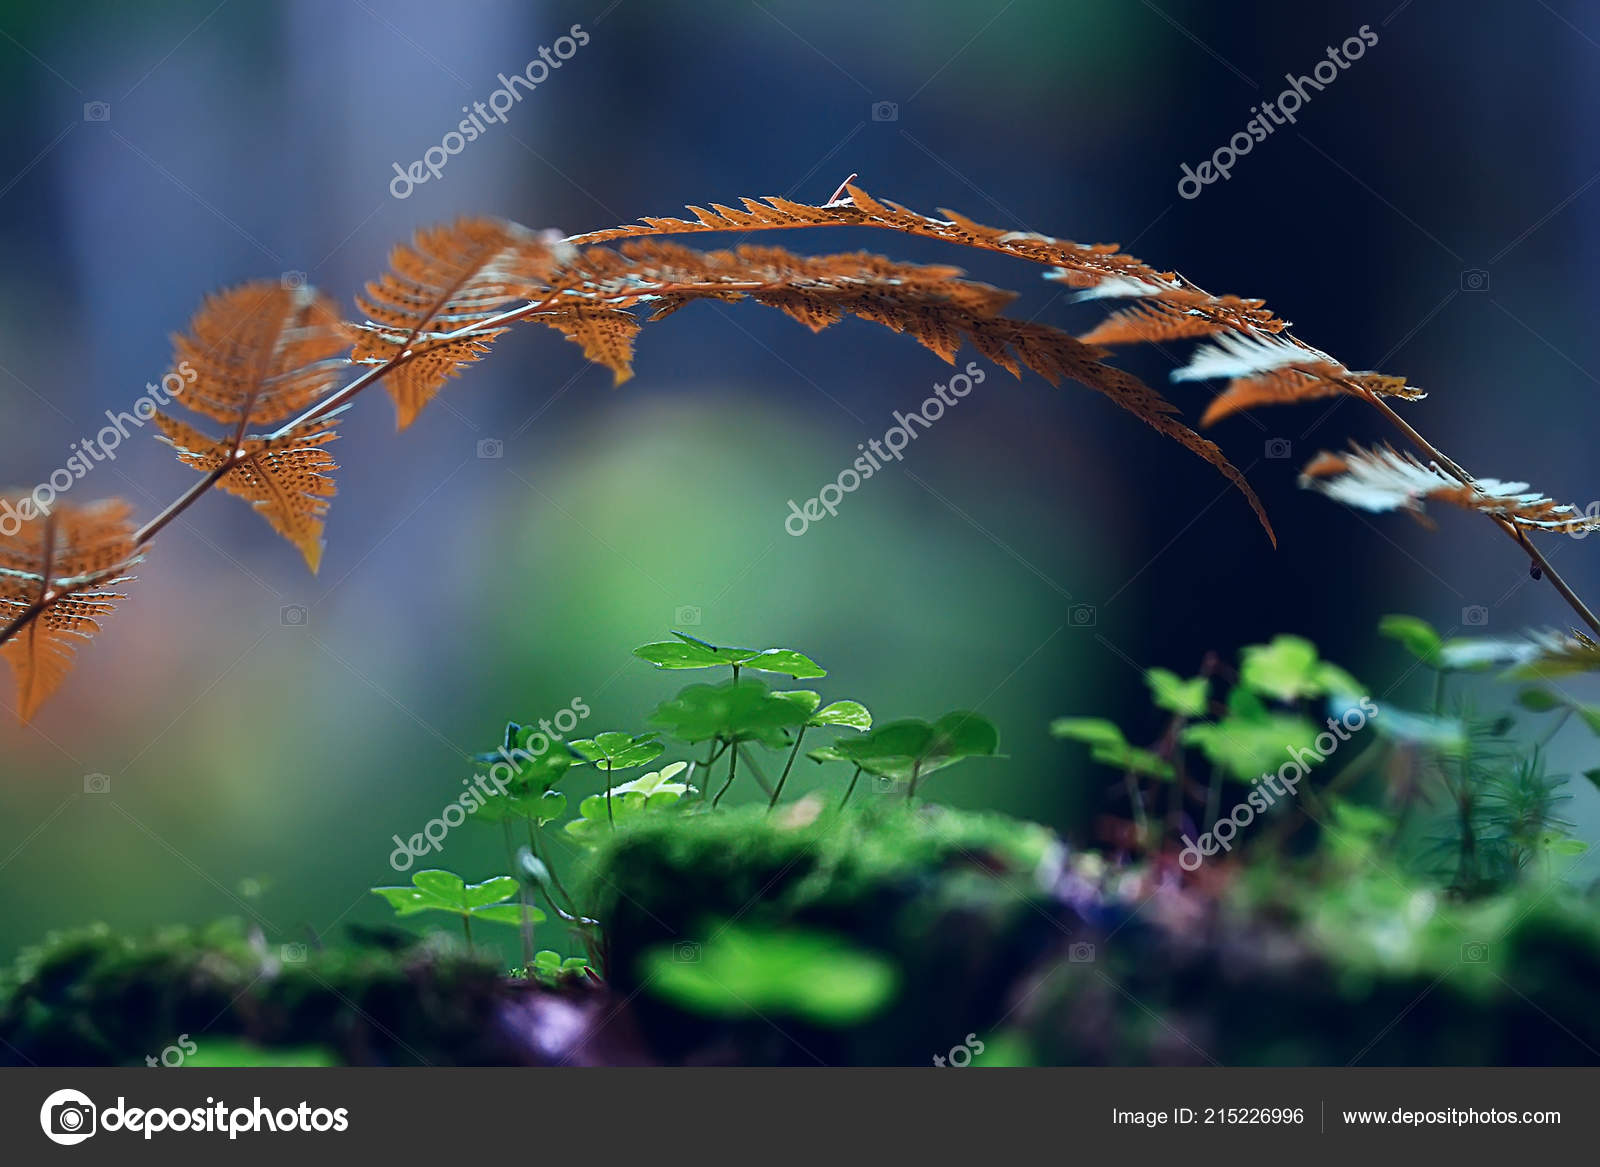 Fern Spring Background Beautiful Nature Forest Park Leaves Design Background Stock Photo C Xload 215226996